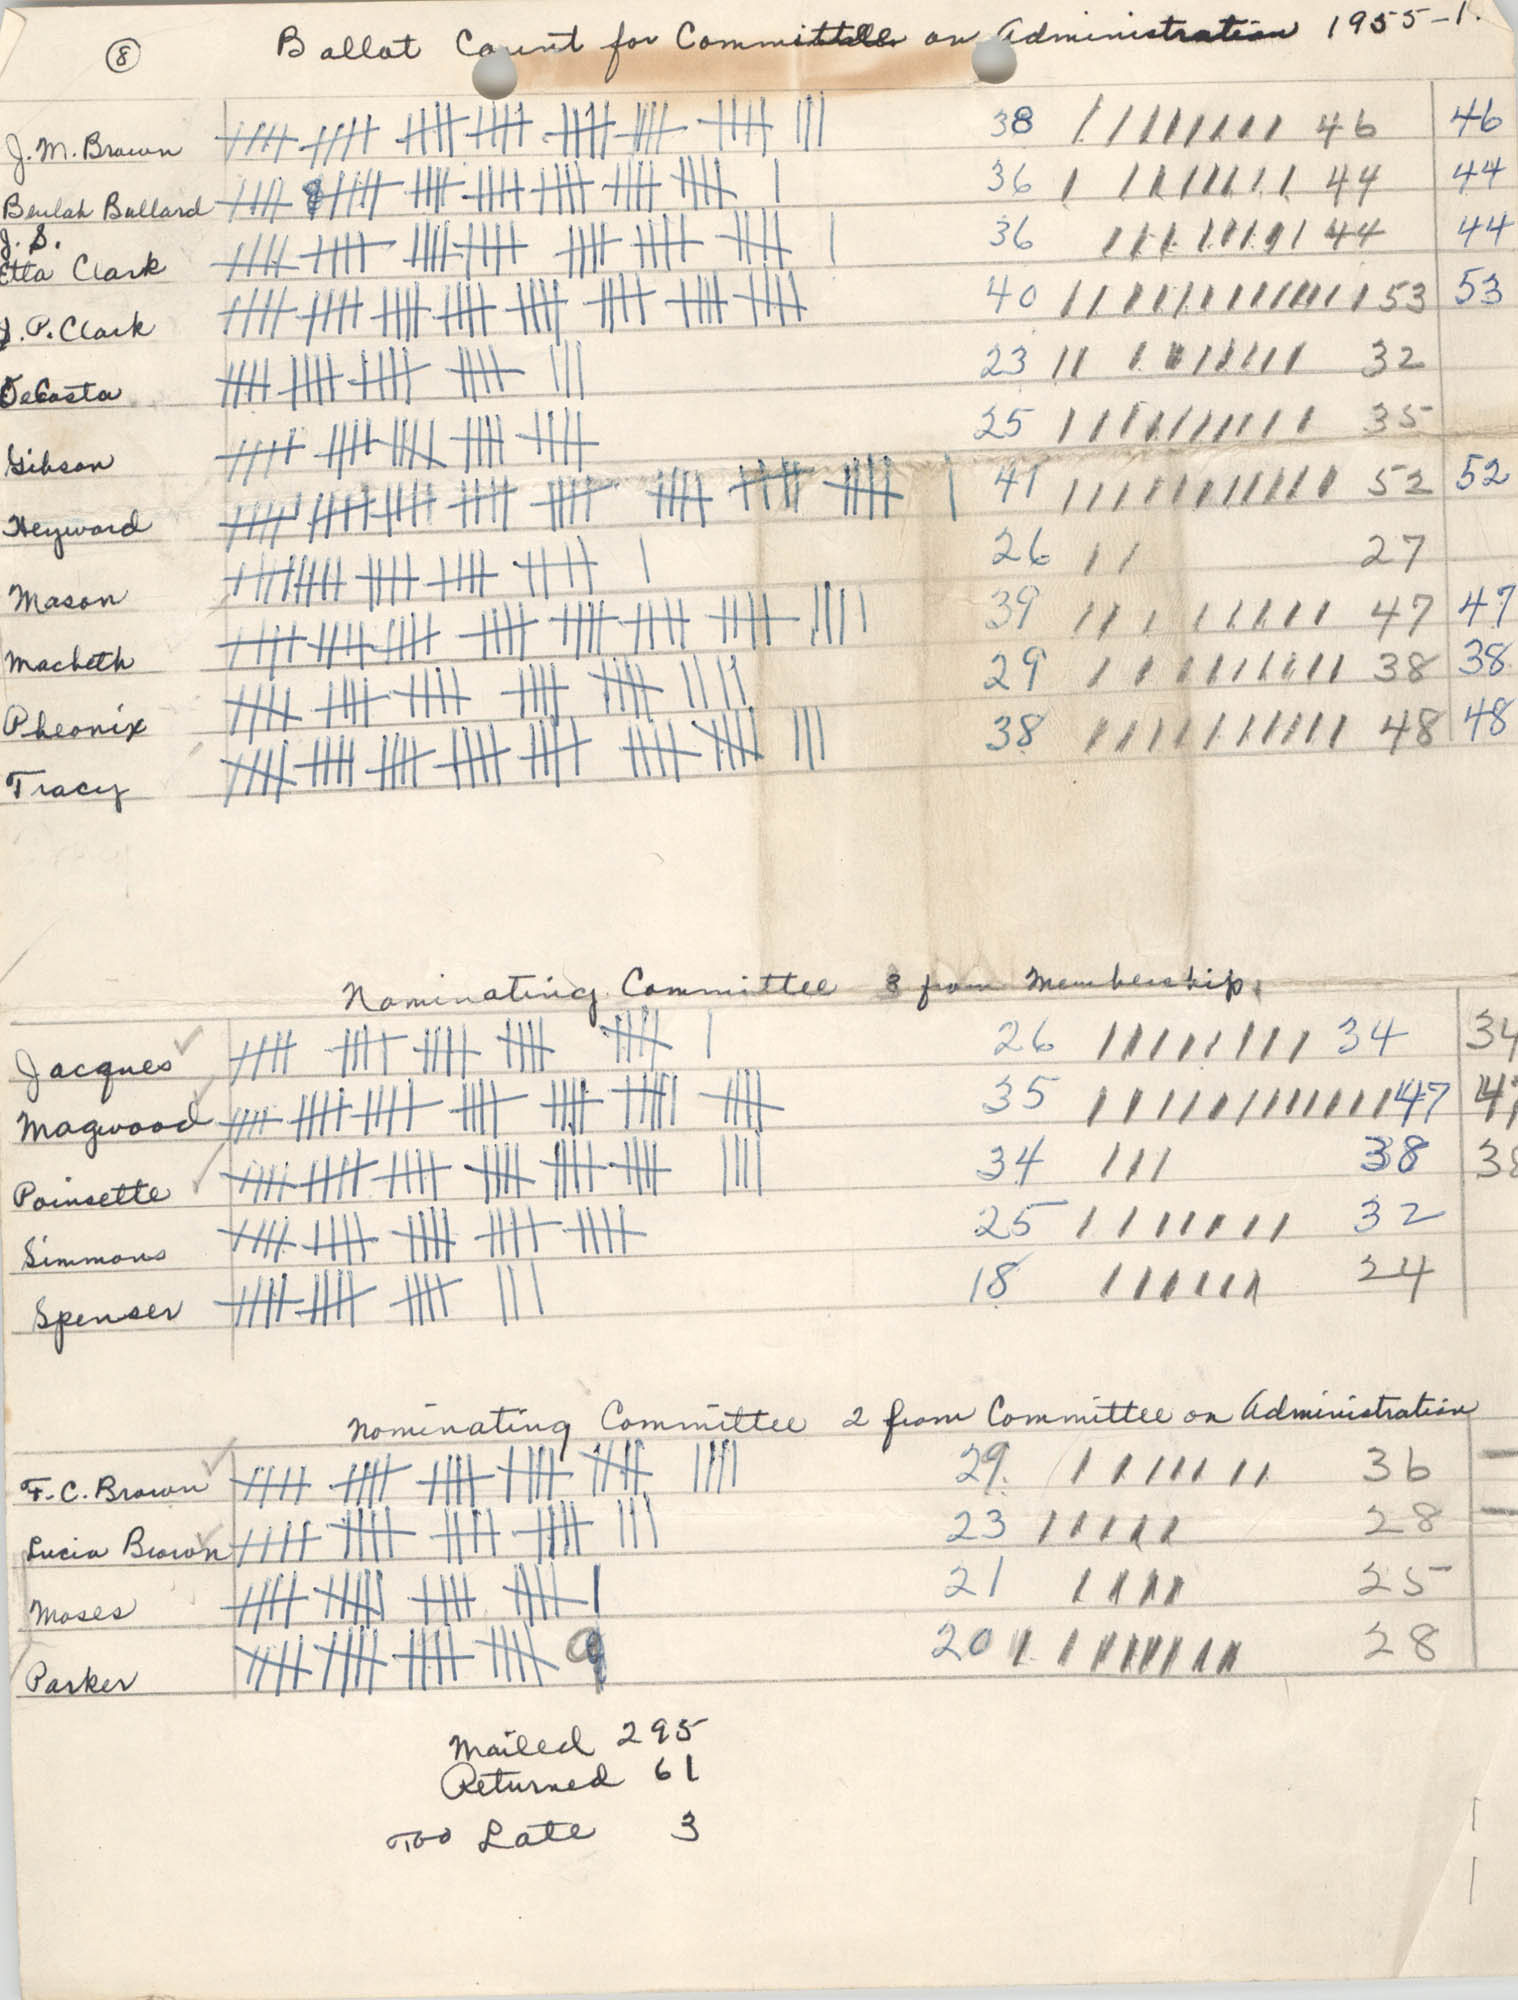 Ballot Count for Committee on Administration, 1955